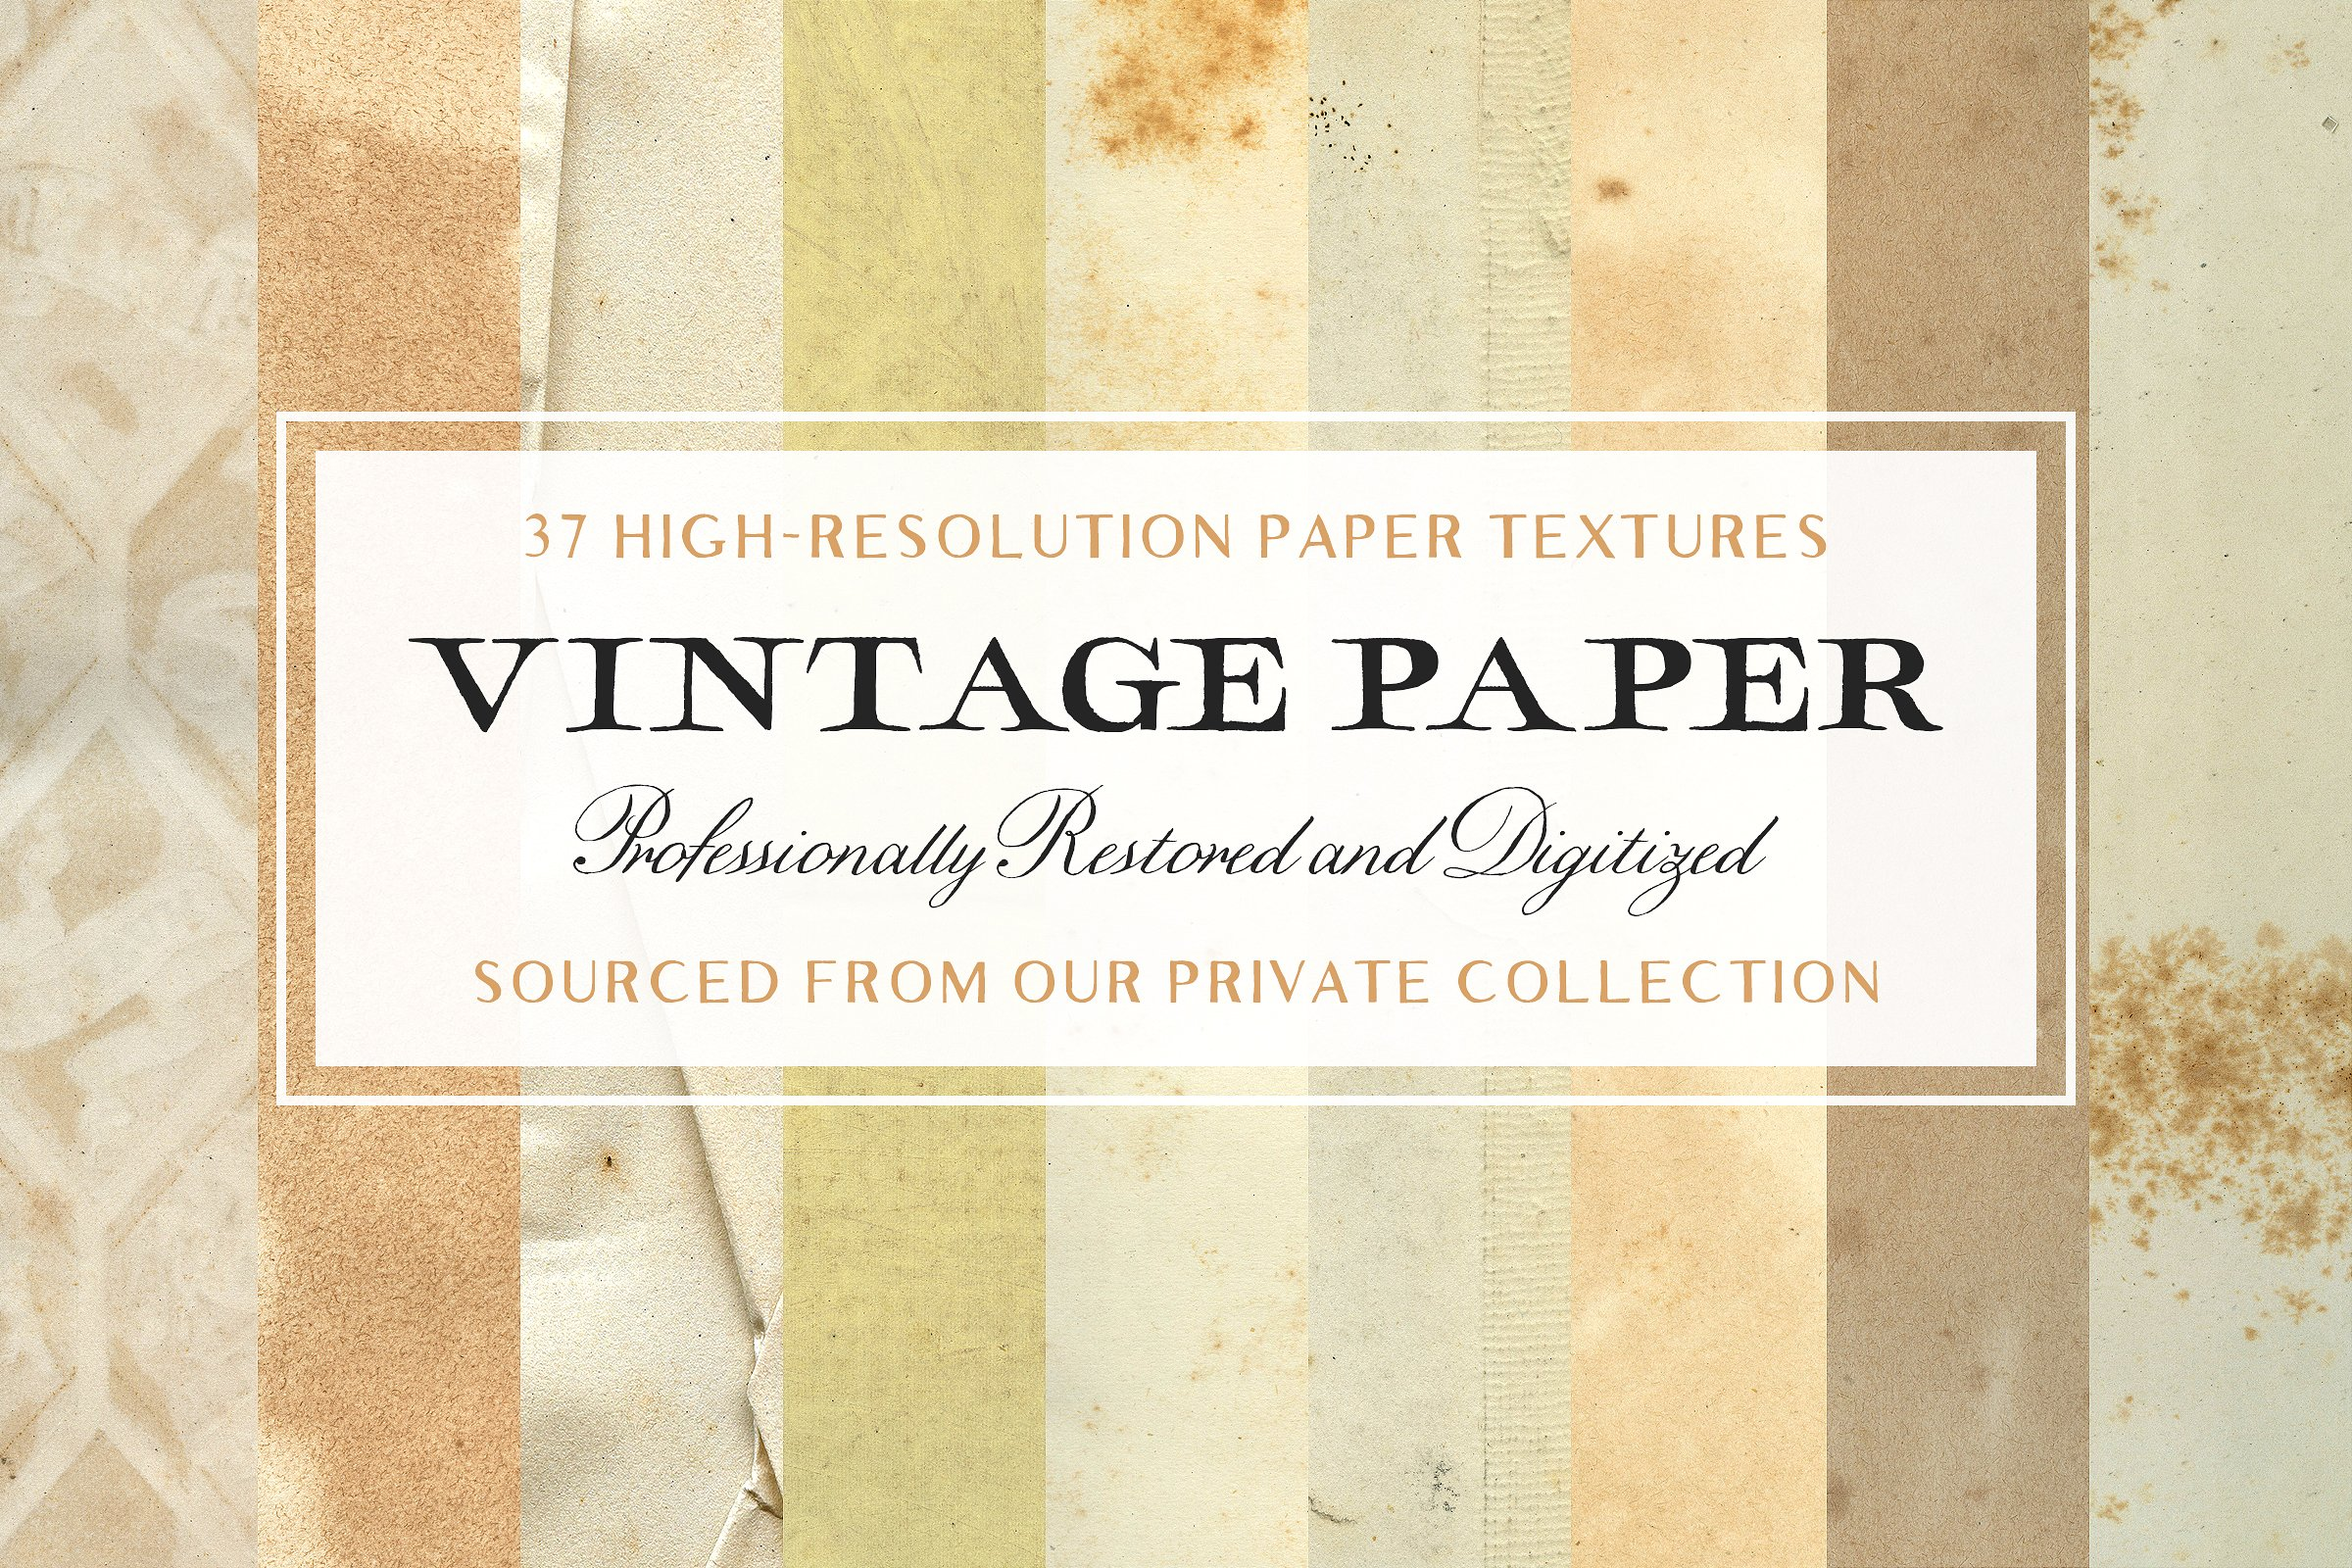 17 Old Paper Textures for Timeless Design Projects